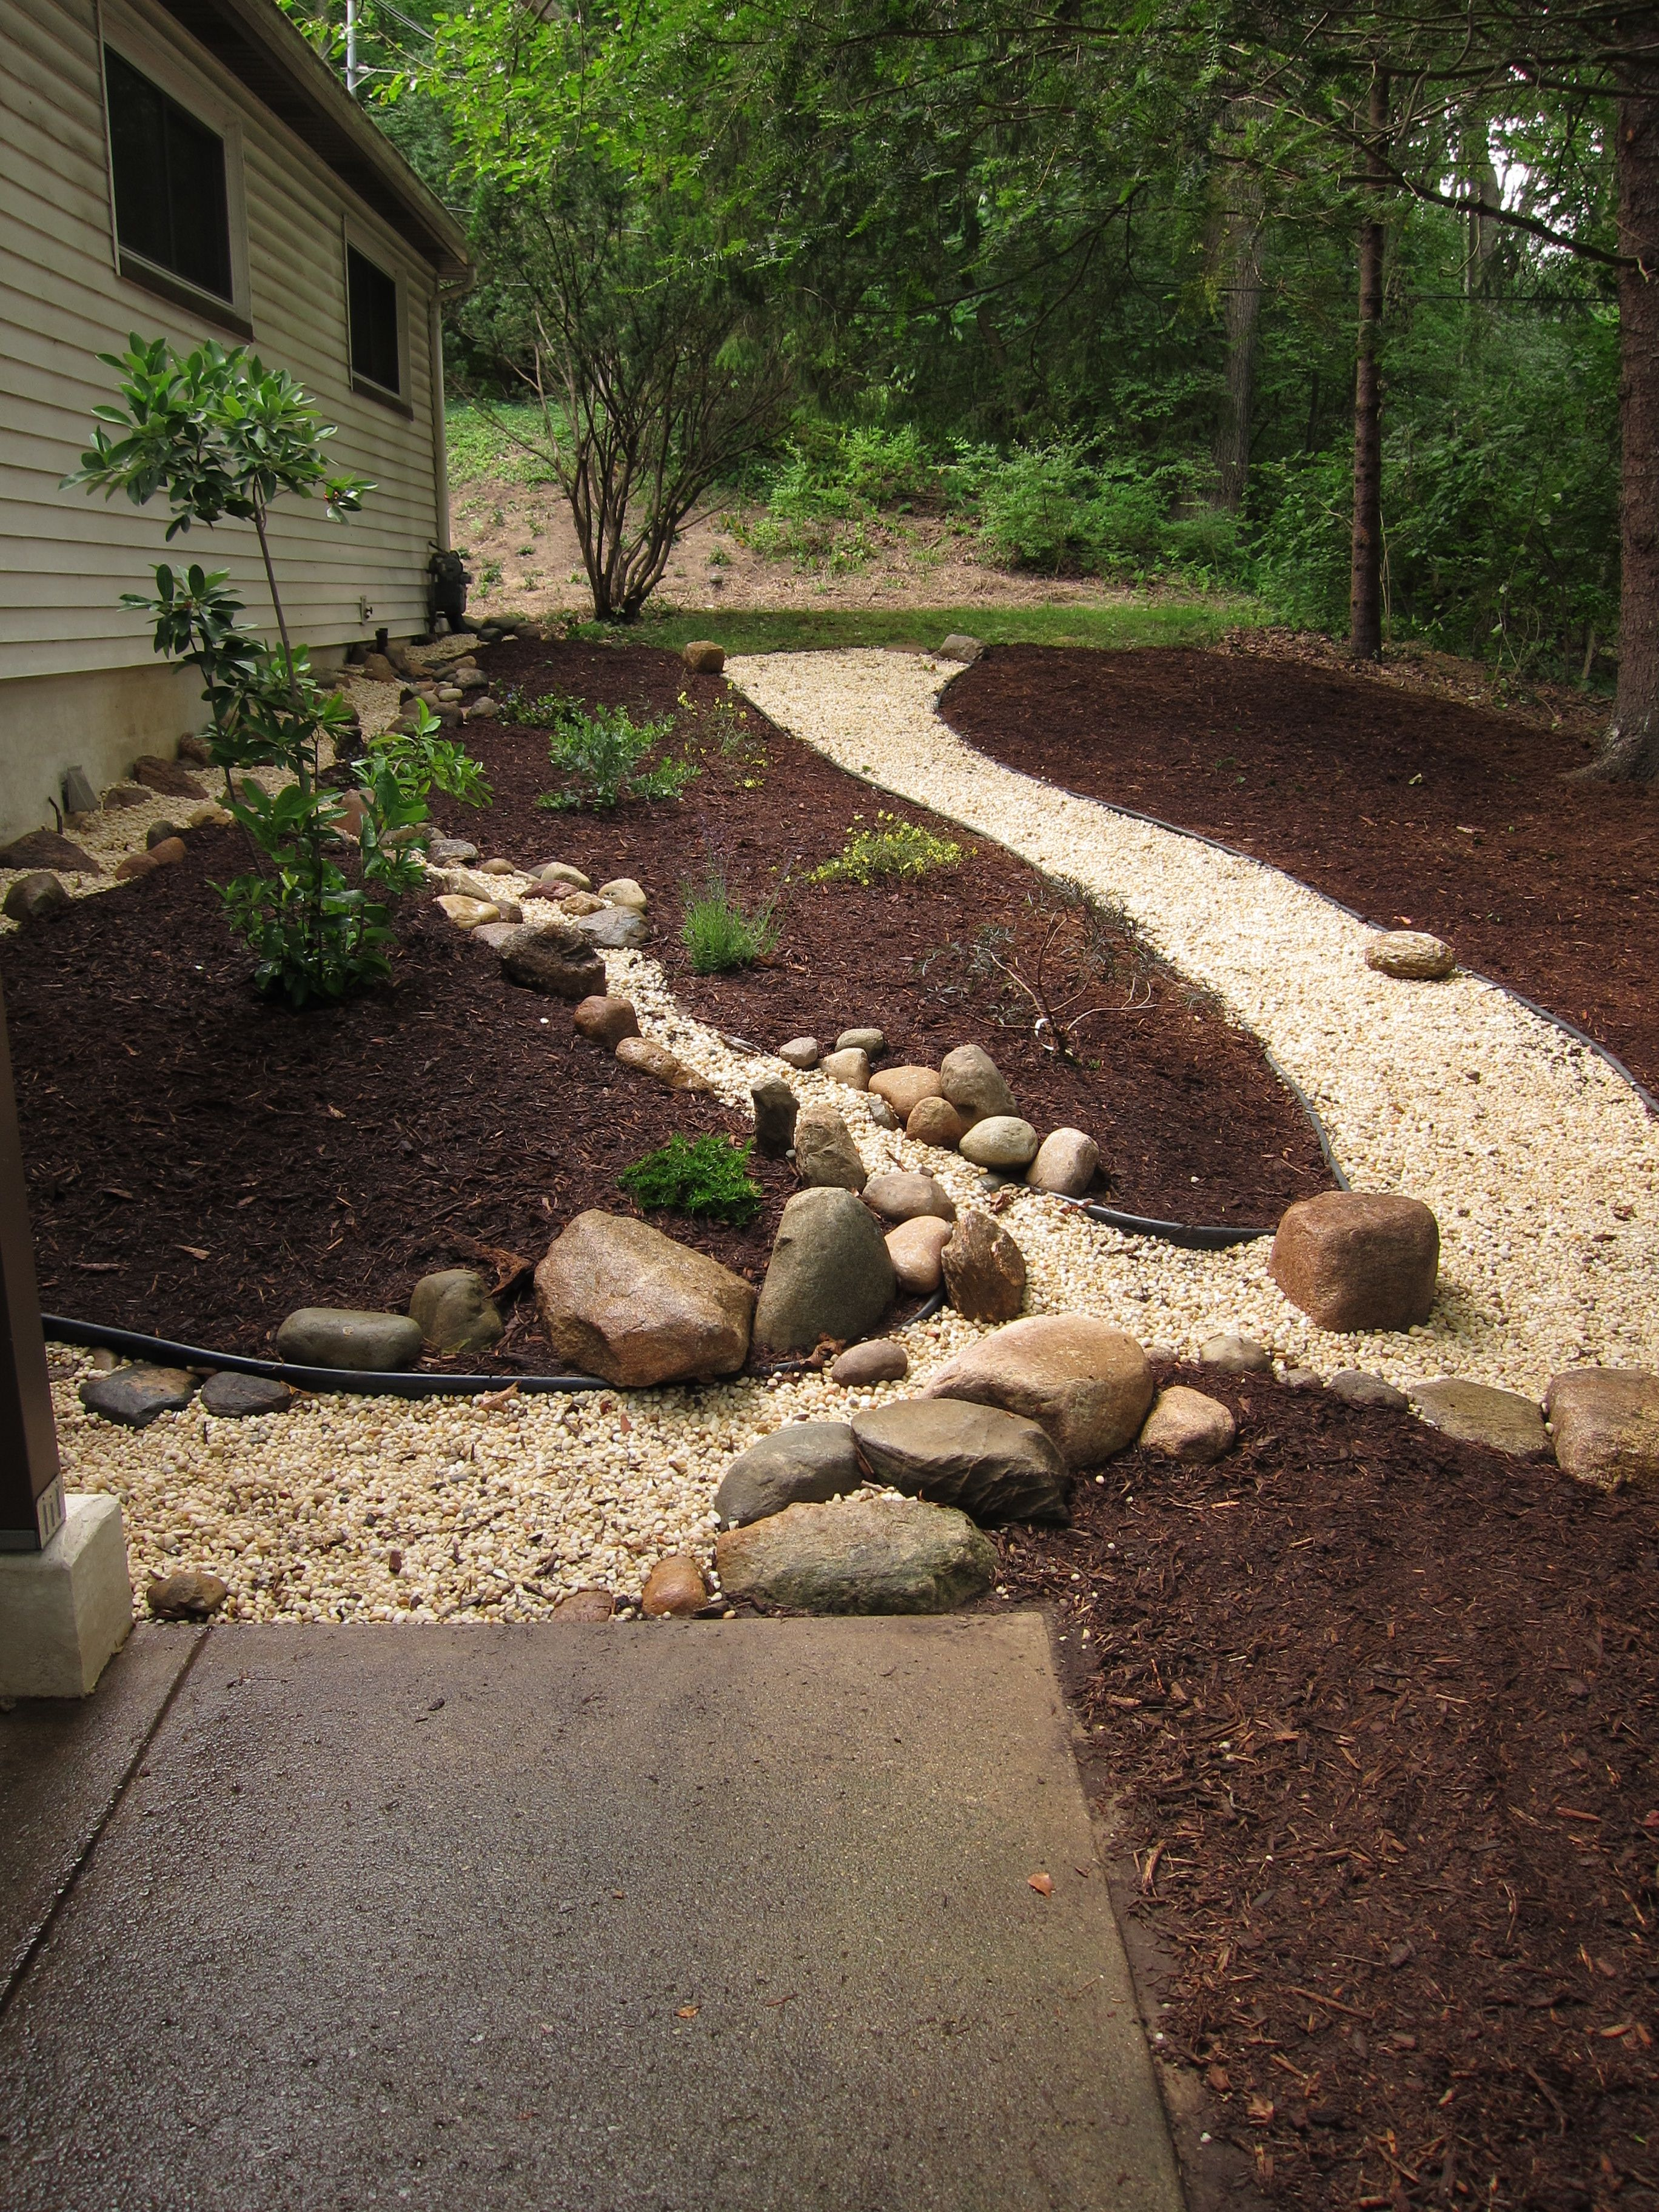 solution for drainage issues perc pipe lots of gravel